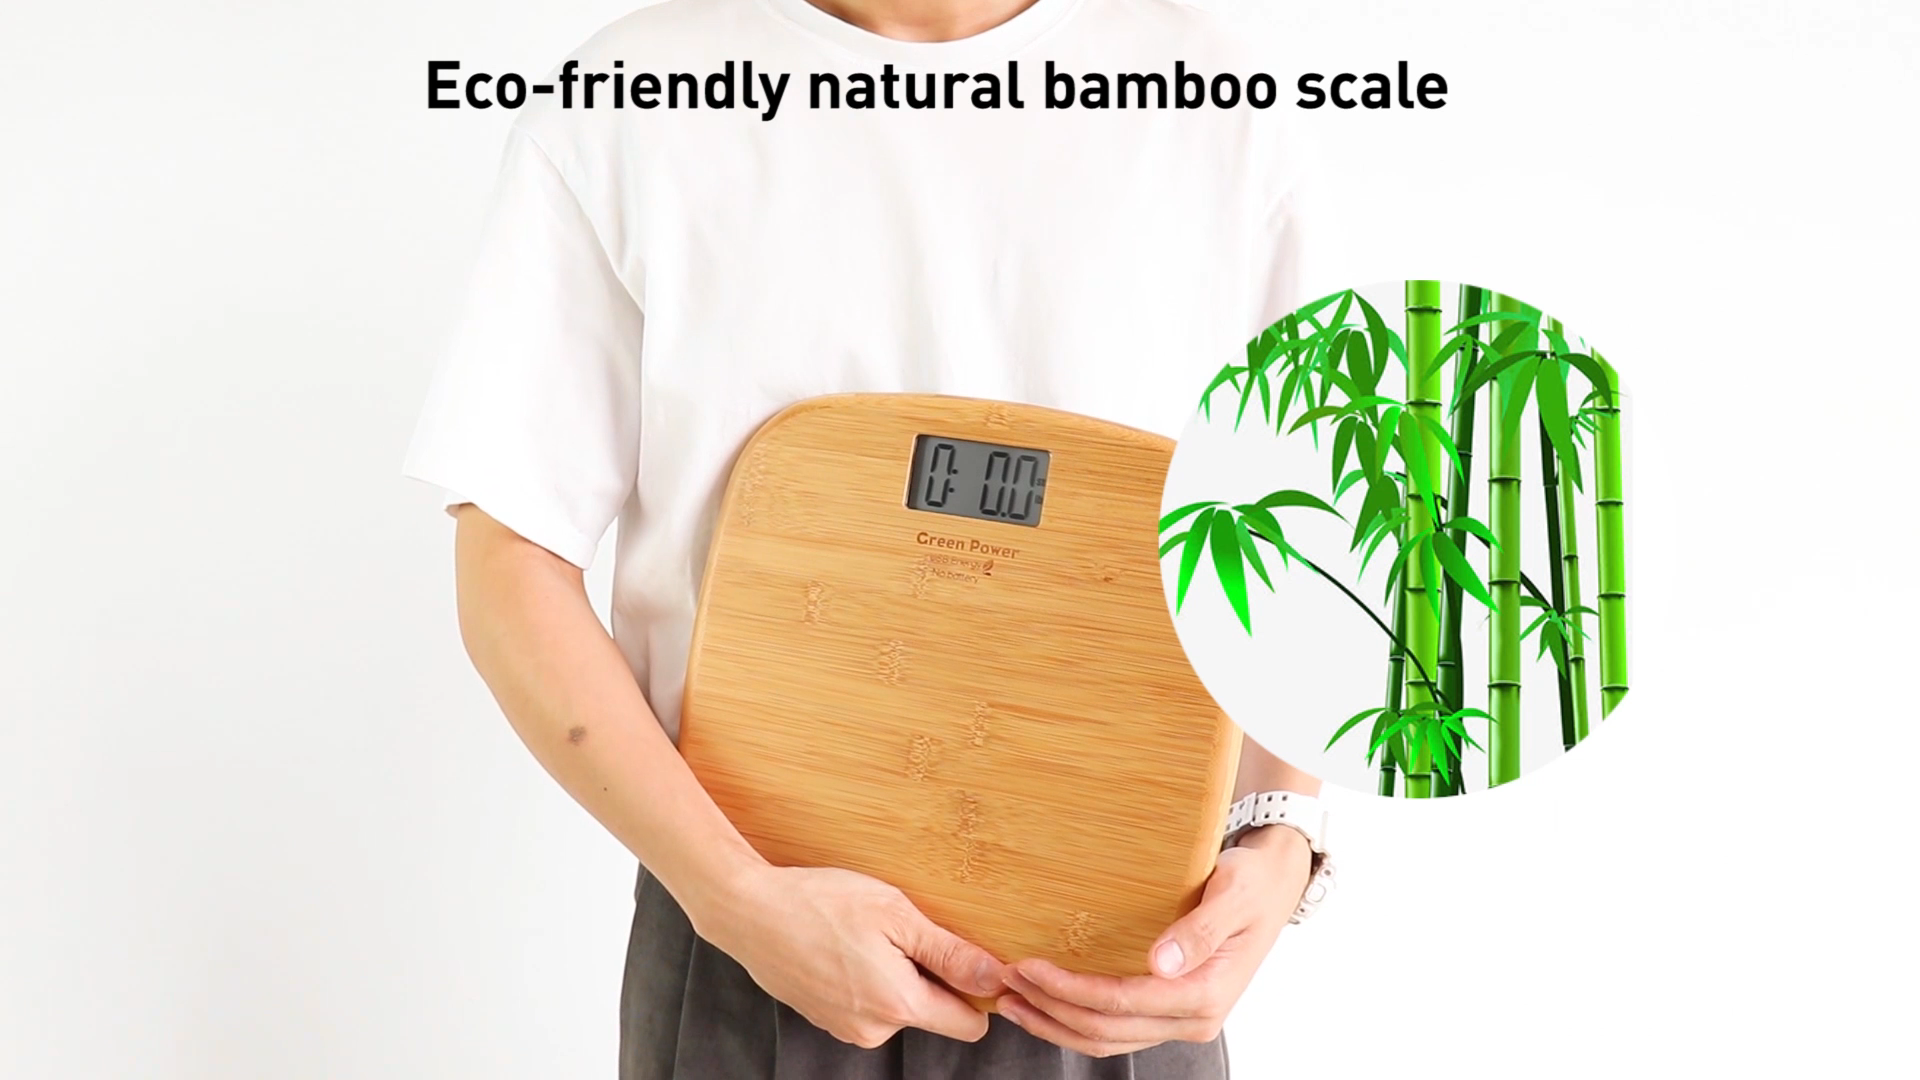 Natural bamboo scale eco-Friendly power USB charging battery free 180kg/400lb/28st max digital household  body scale